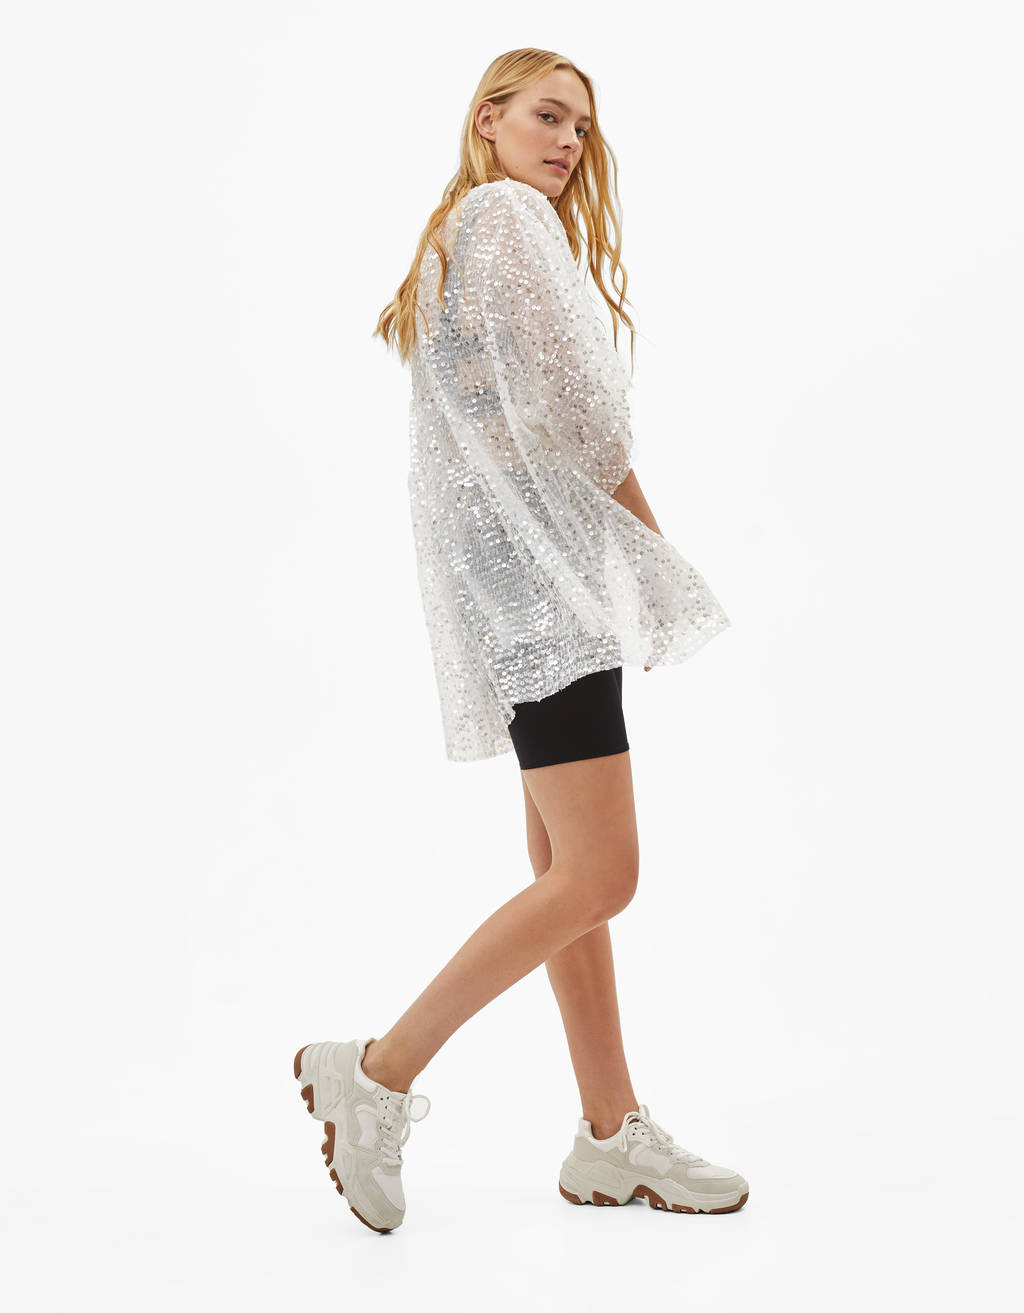 0a16a5d54 Party Collection - COLLECTION - WOMEN - Bershka United States